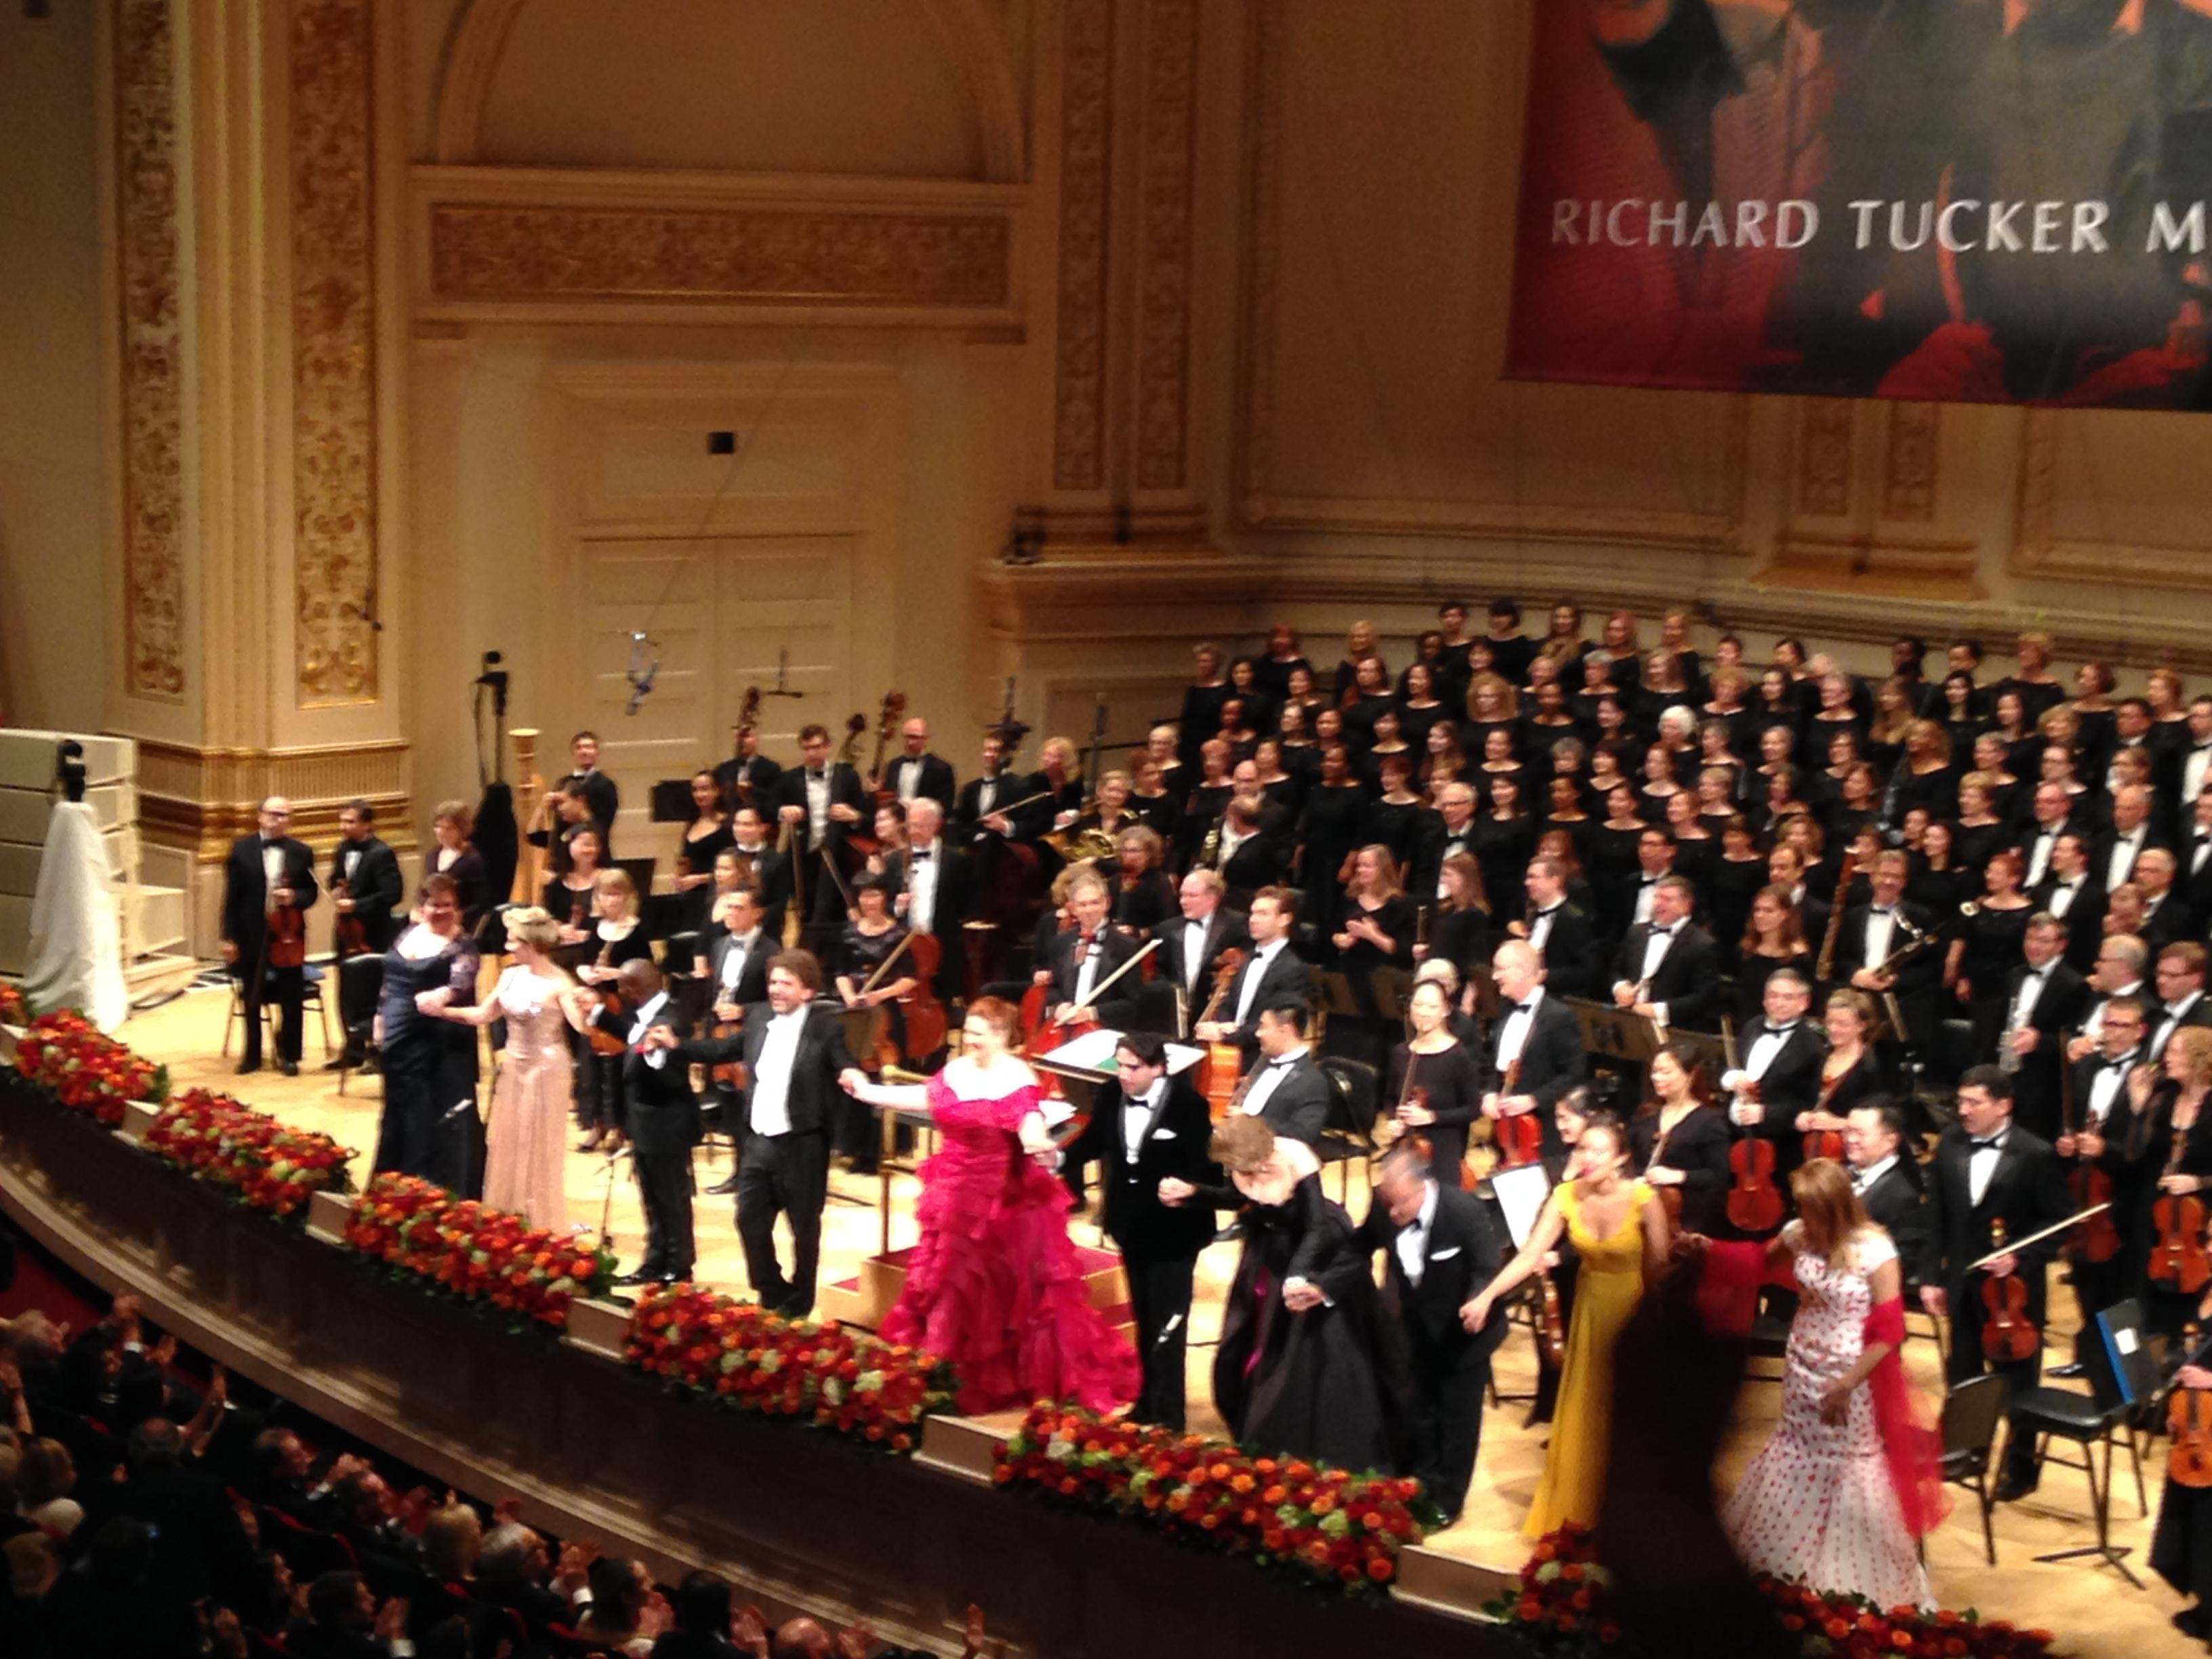 Carnegie Hall Section Box 13 Row 2 Seat 5